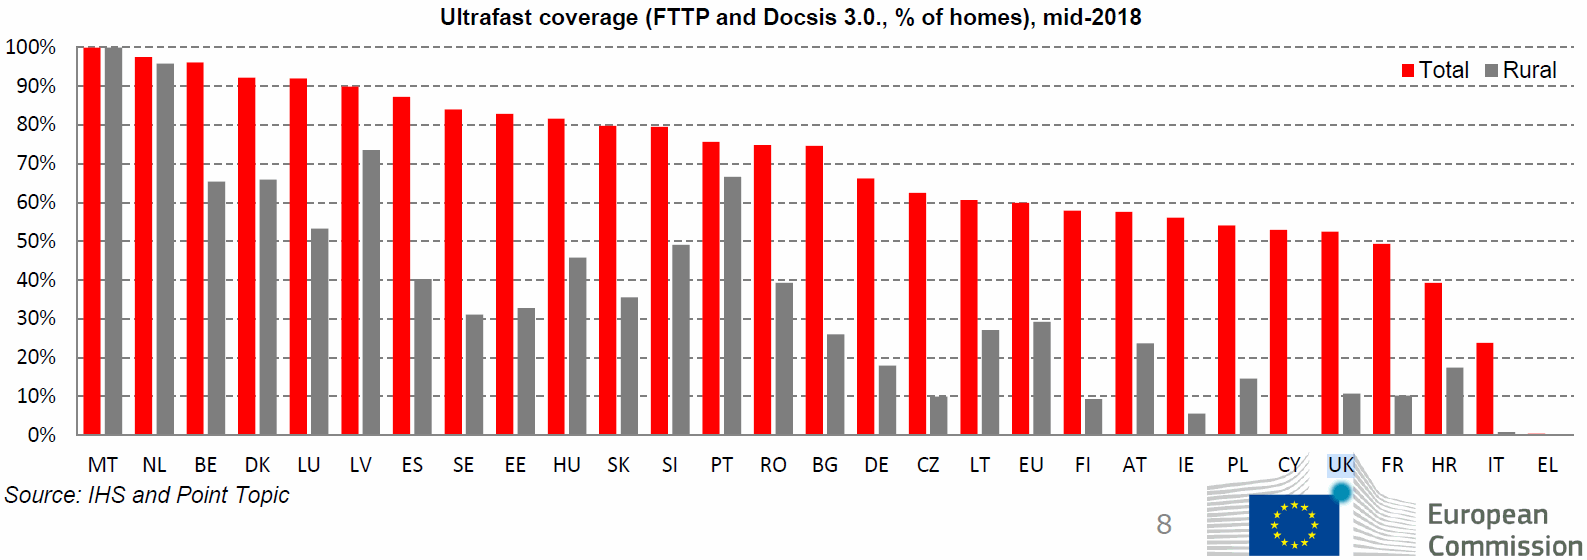 eu_2019_ultrafast_broadband_coverage_by_country